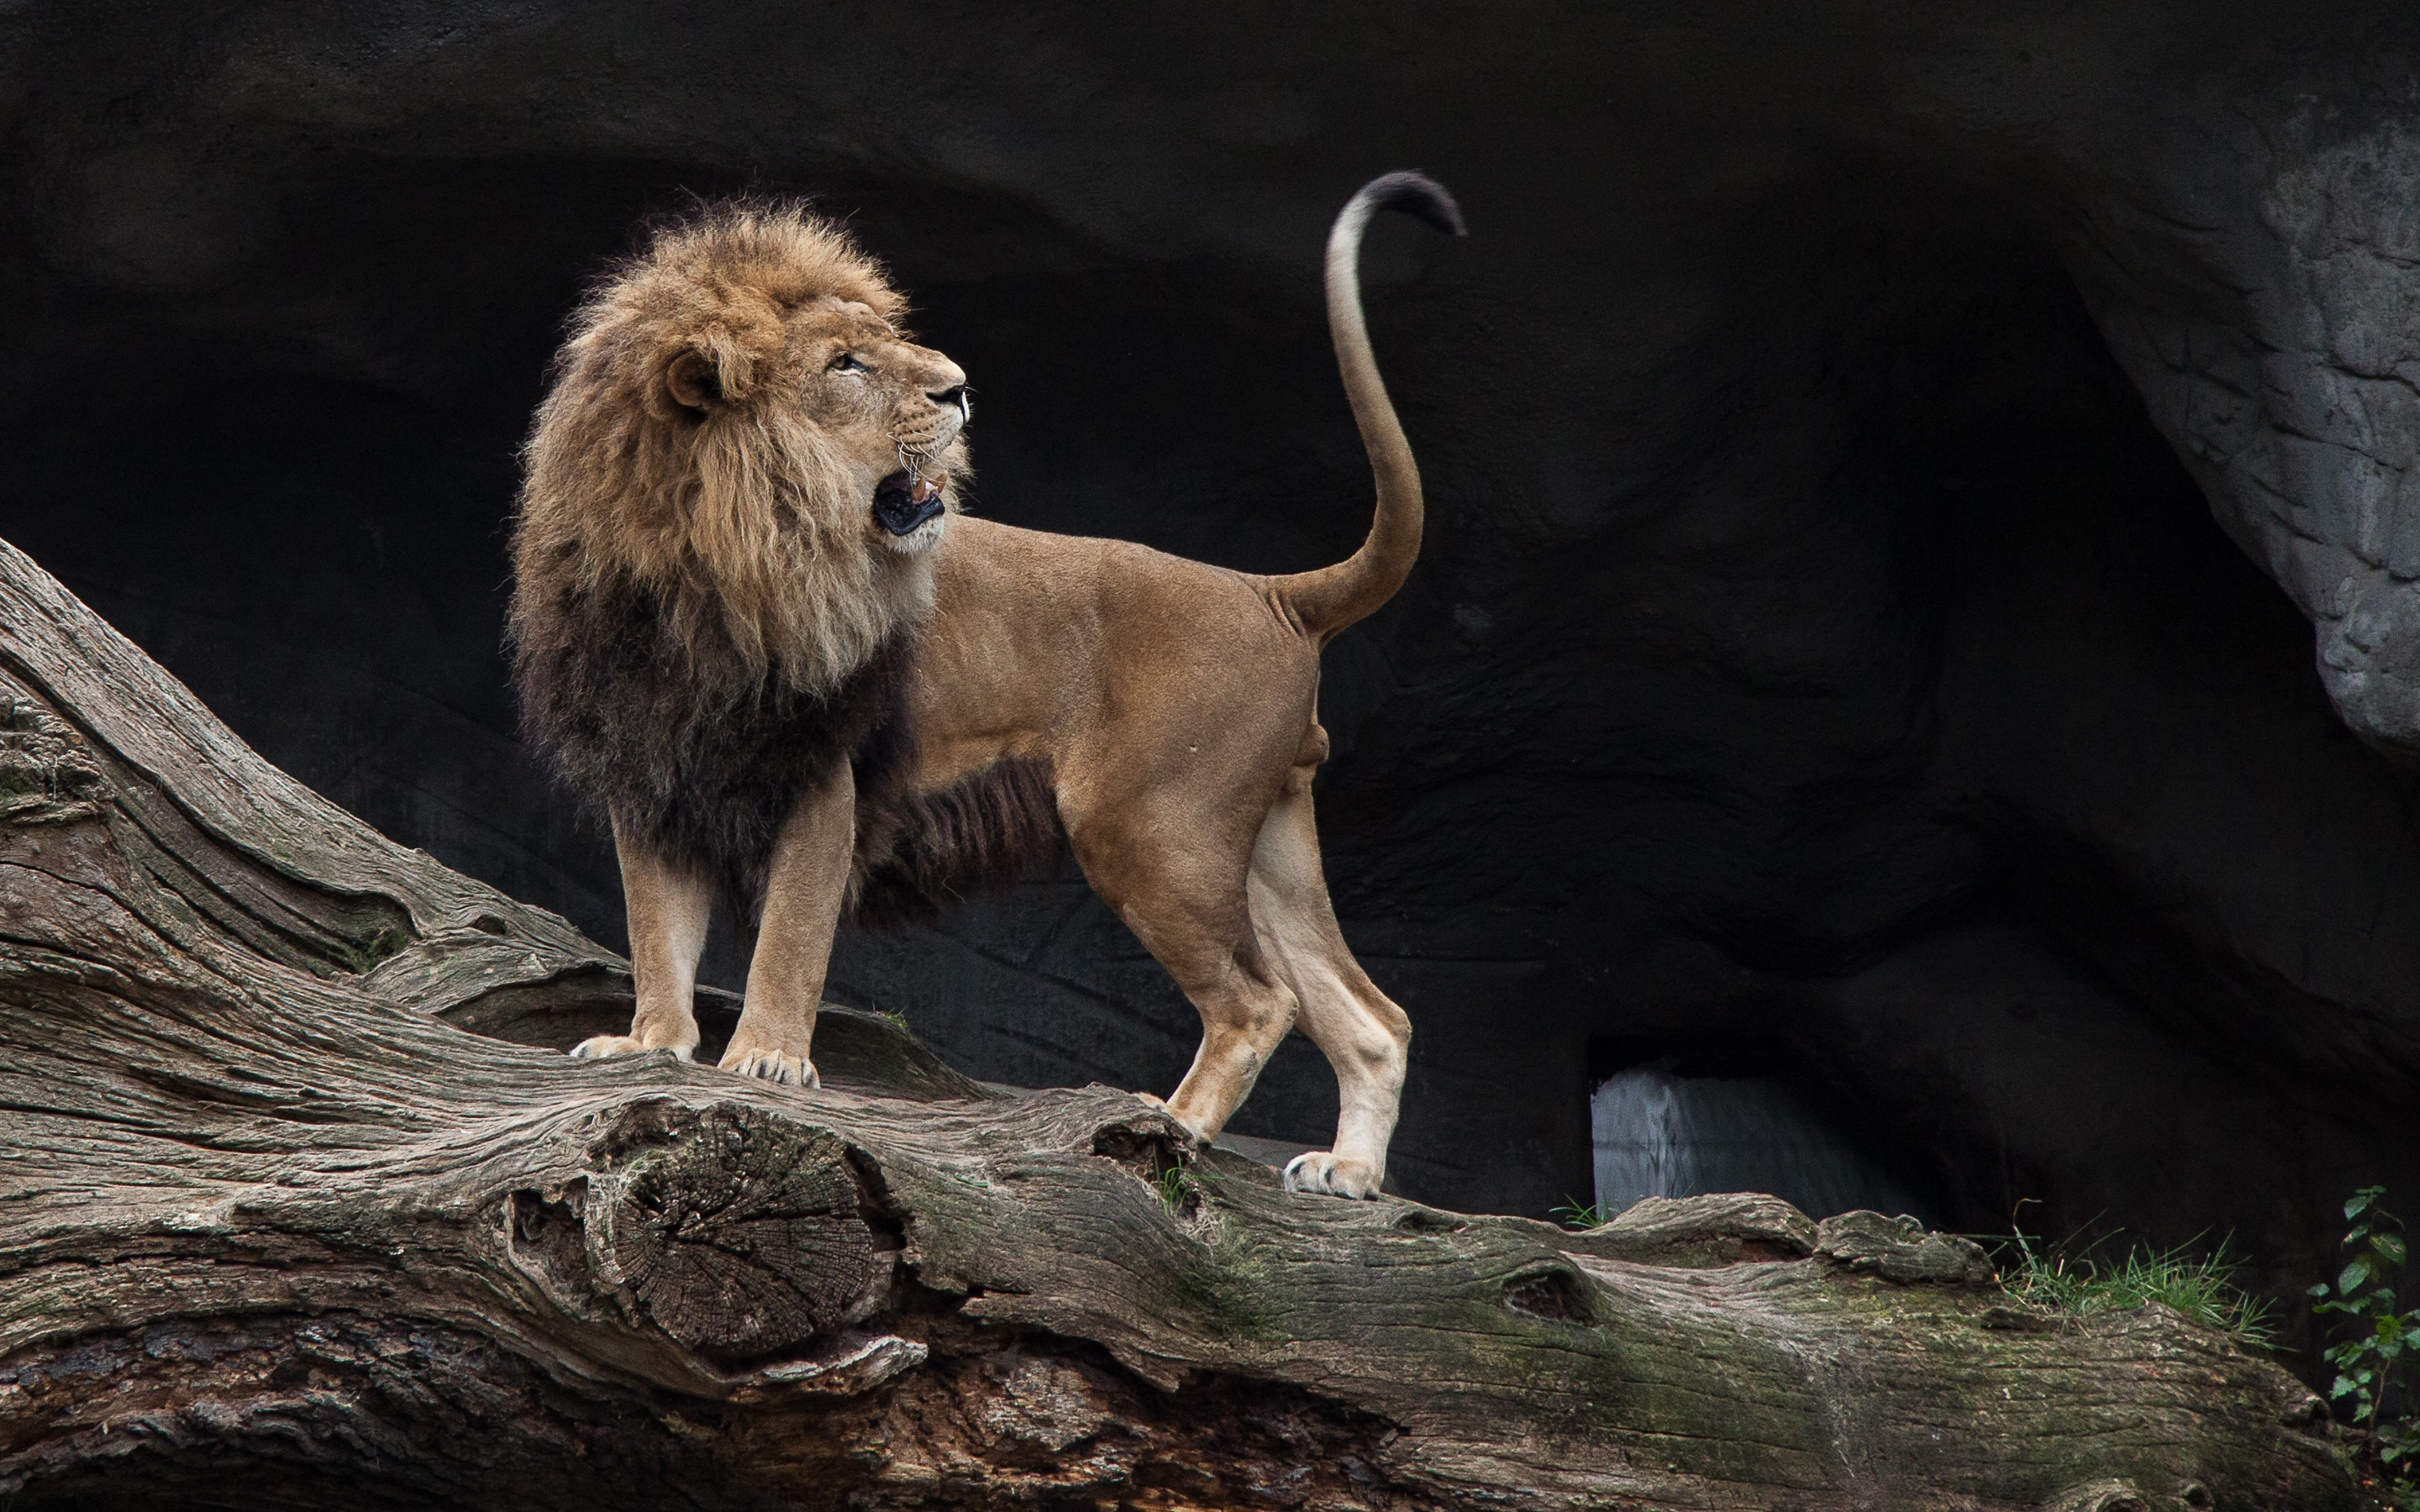 Wallpaper Lion look back, big cat 2880x1800 HD Picture, Image